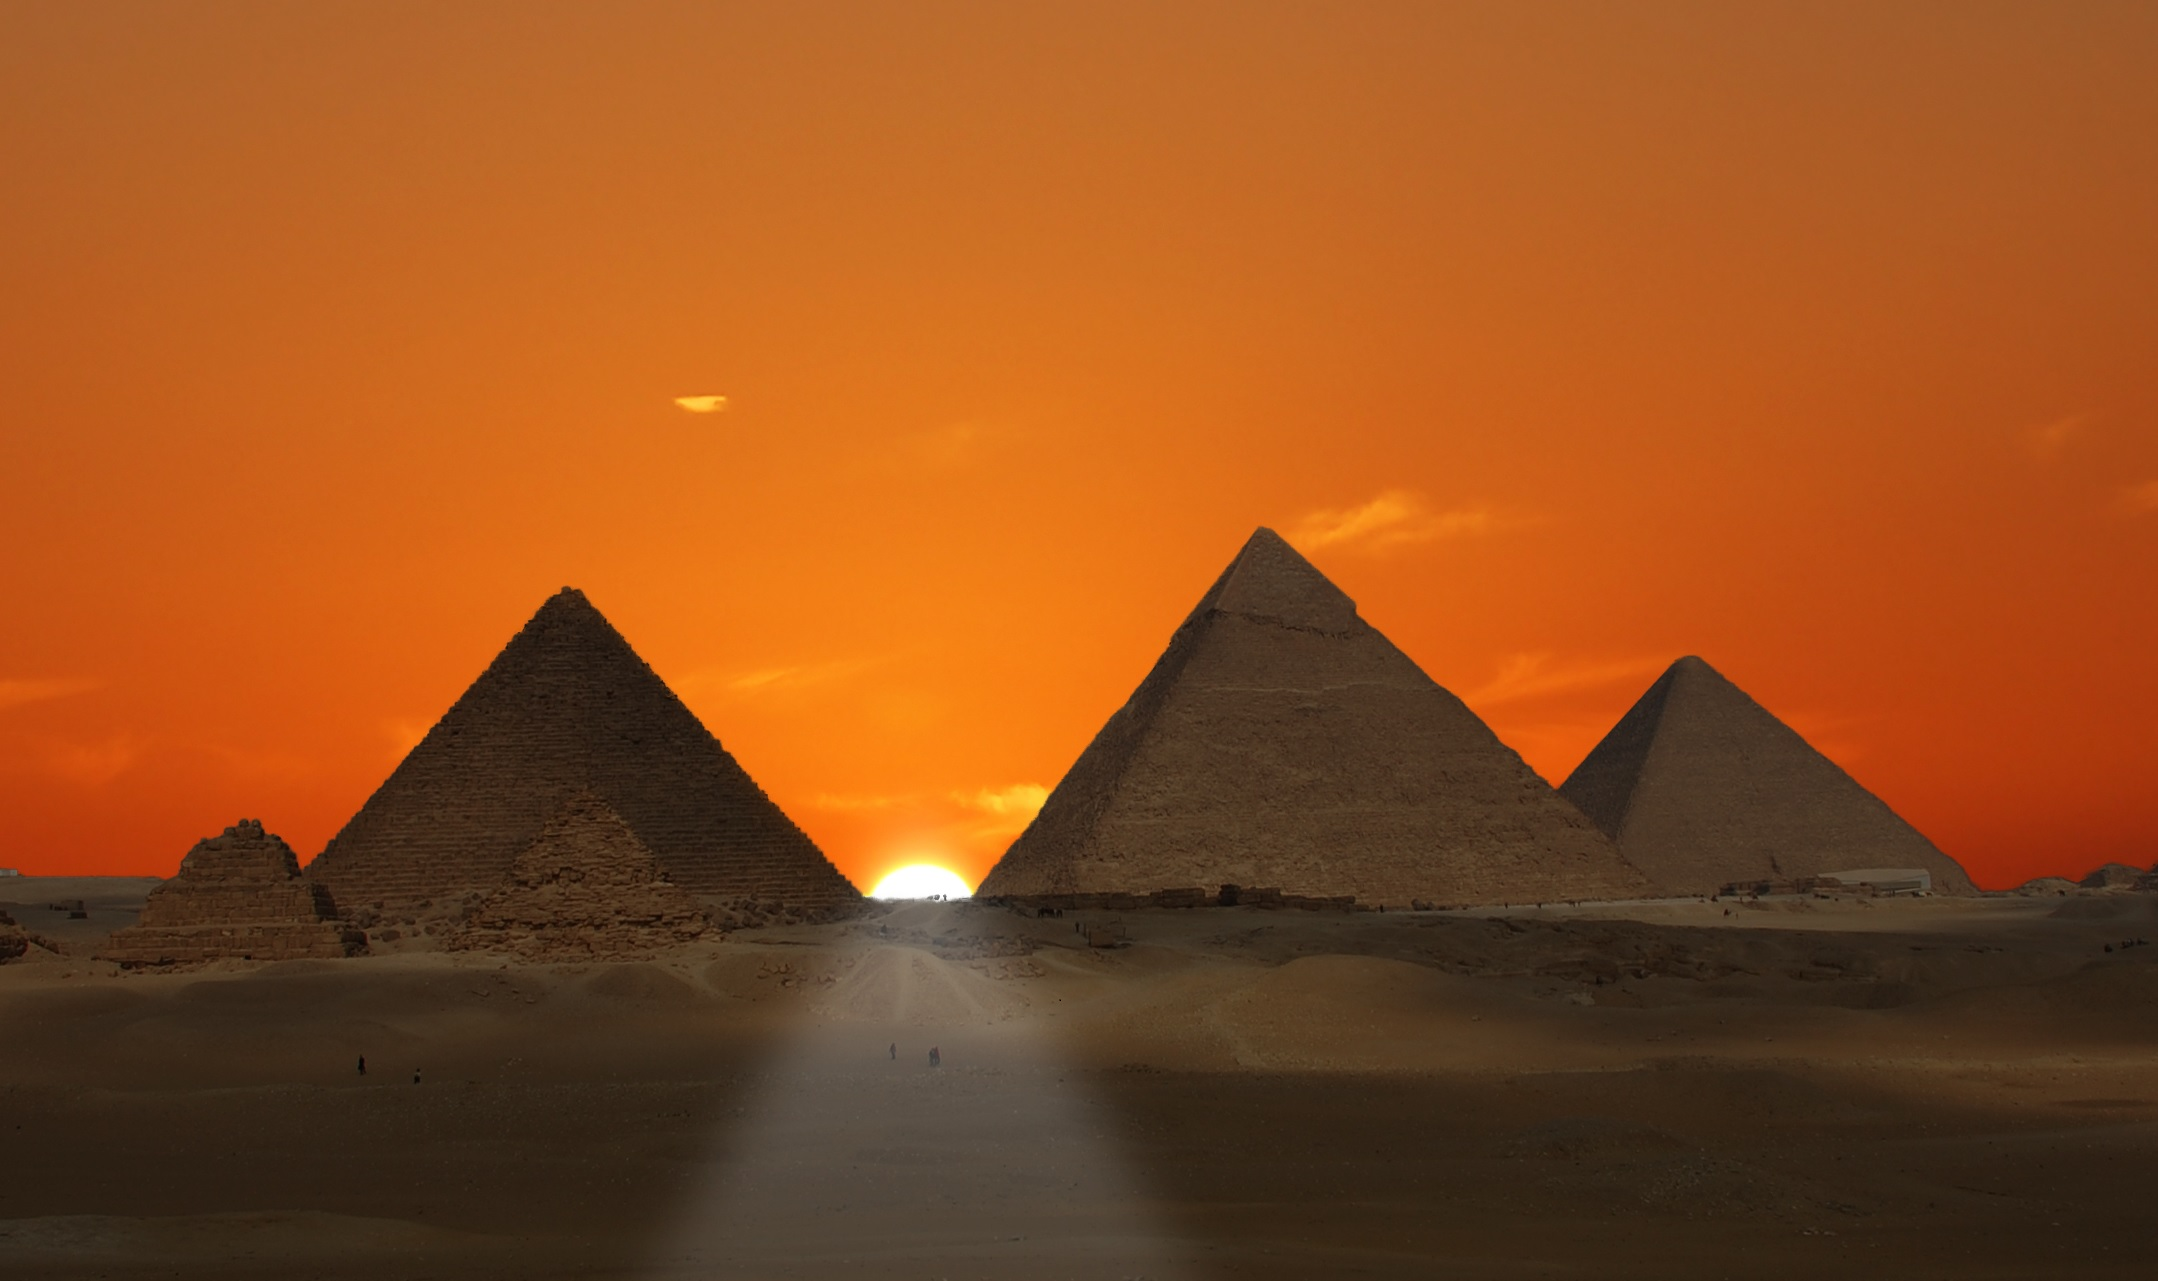 Sunset Egyptian Pyramids. Shutterstock.